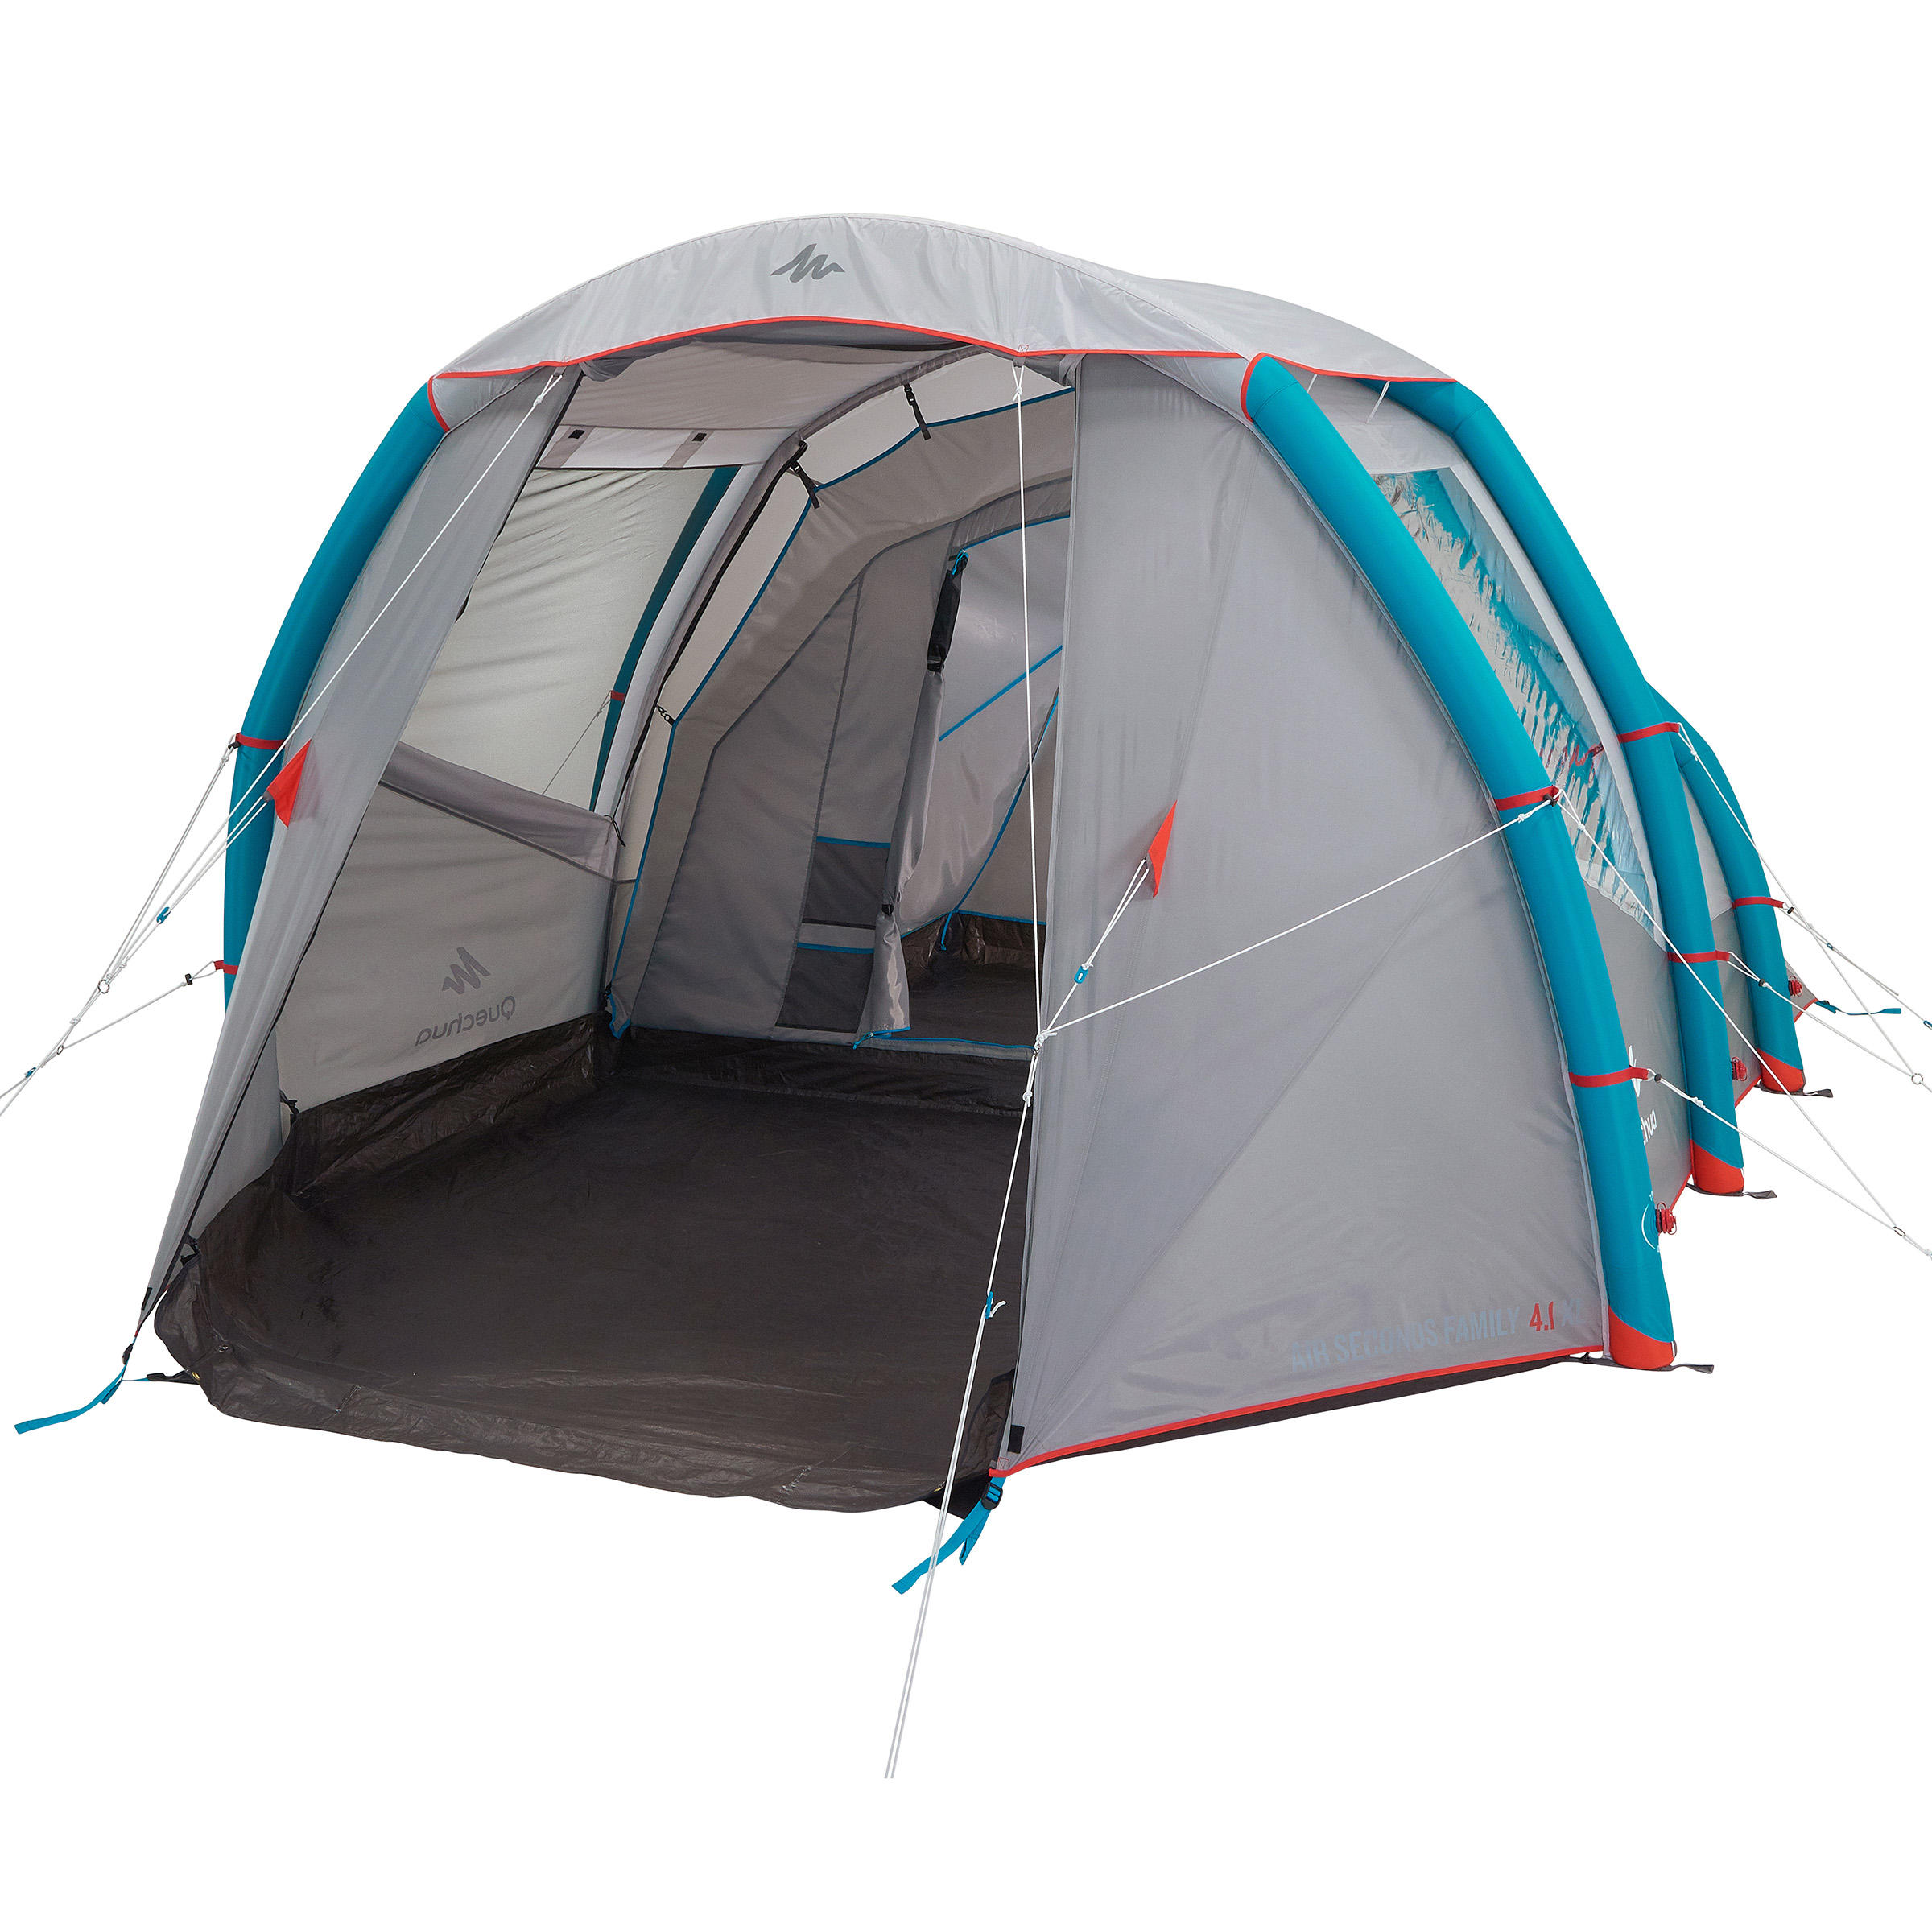 Air Seconds 4.1 xl Family C&ing Tent | 4-Person - 1099235  sc 1 th 225 & 4 to 8 pers tents Air Seconds 4.1 xl Family Camping Tent | 4 ...